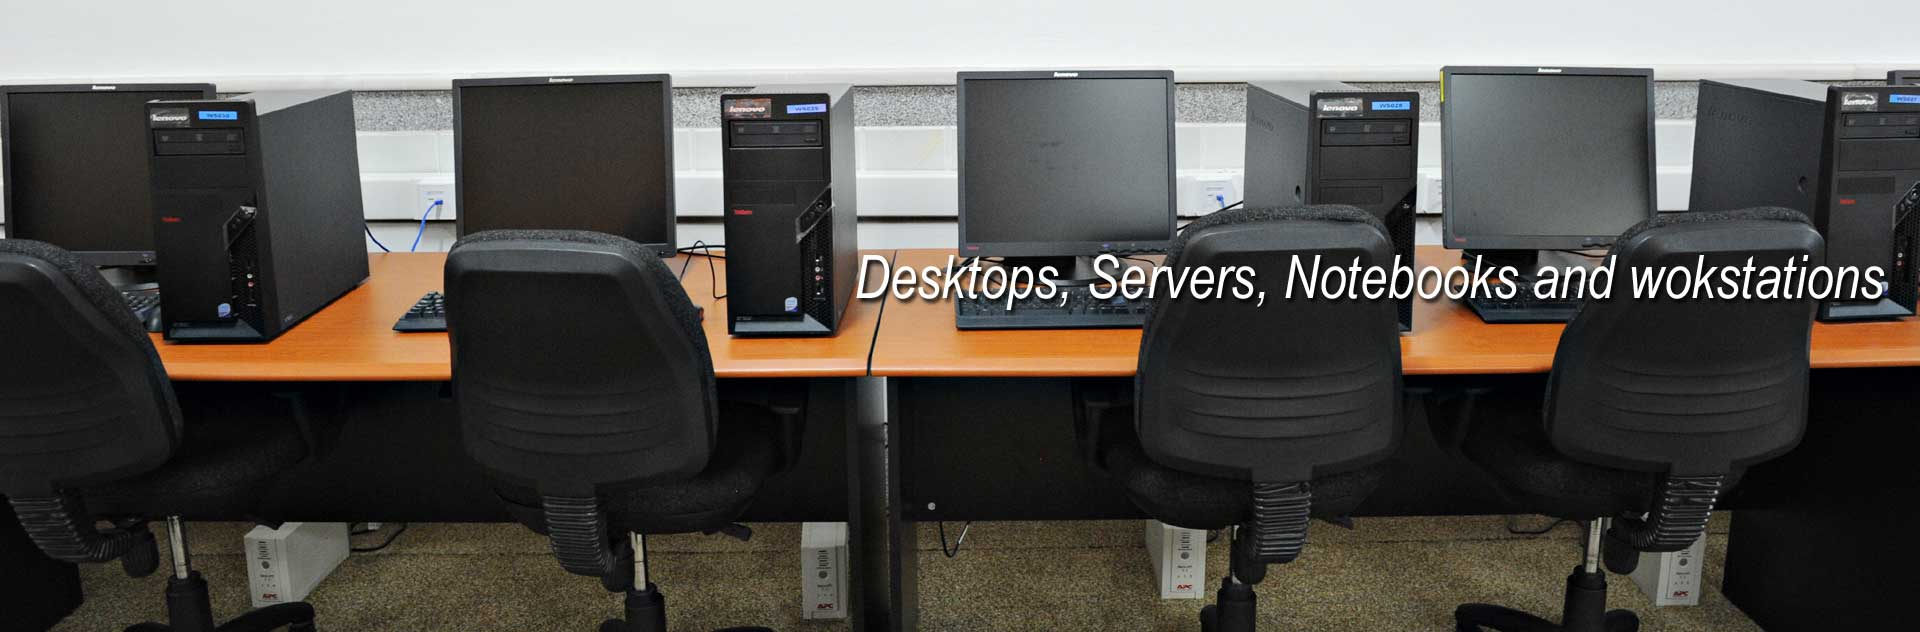 Notebooks, Desktops, Servers and workstations